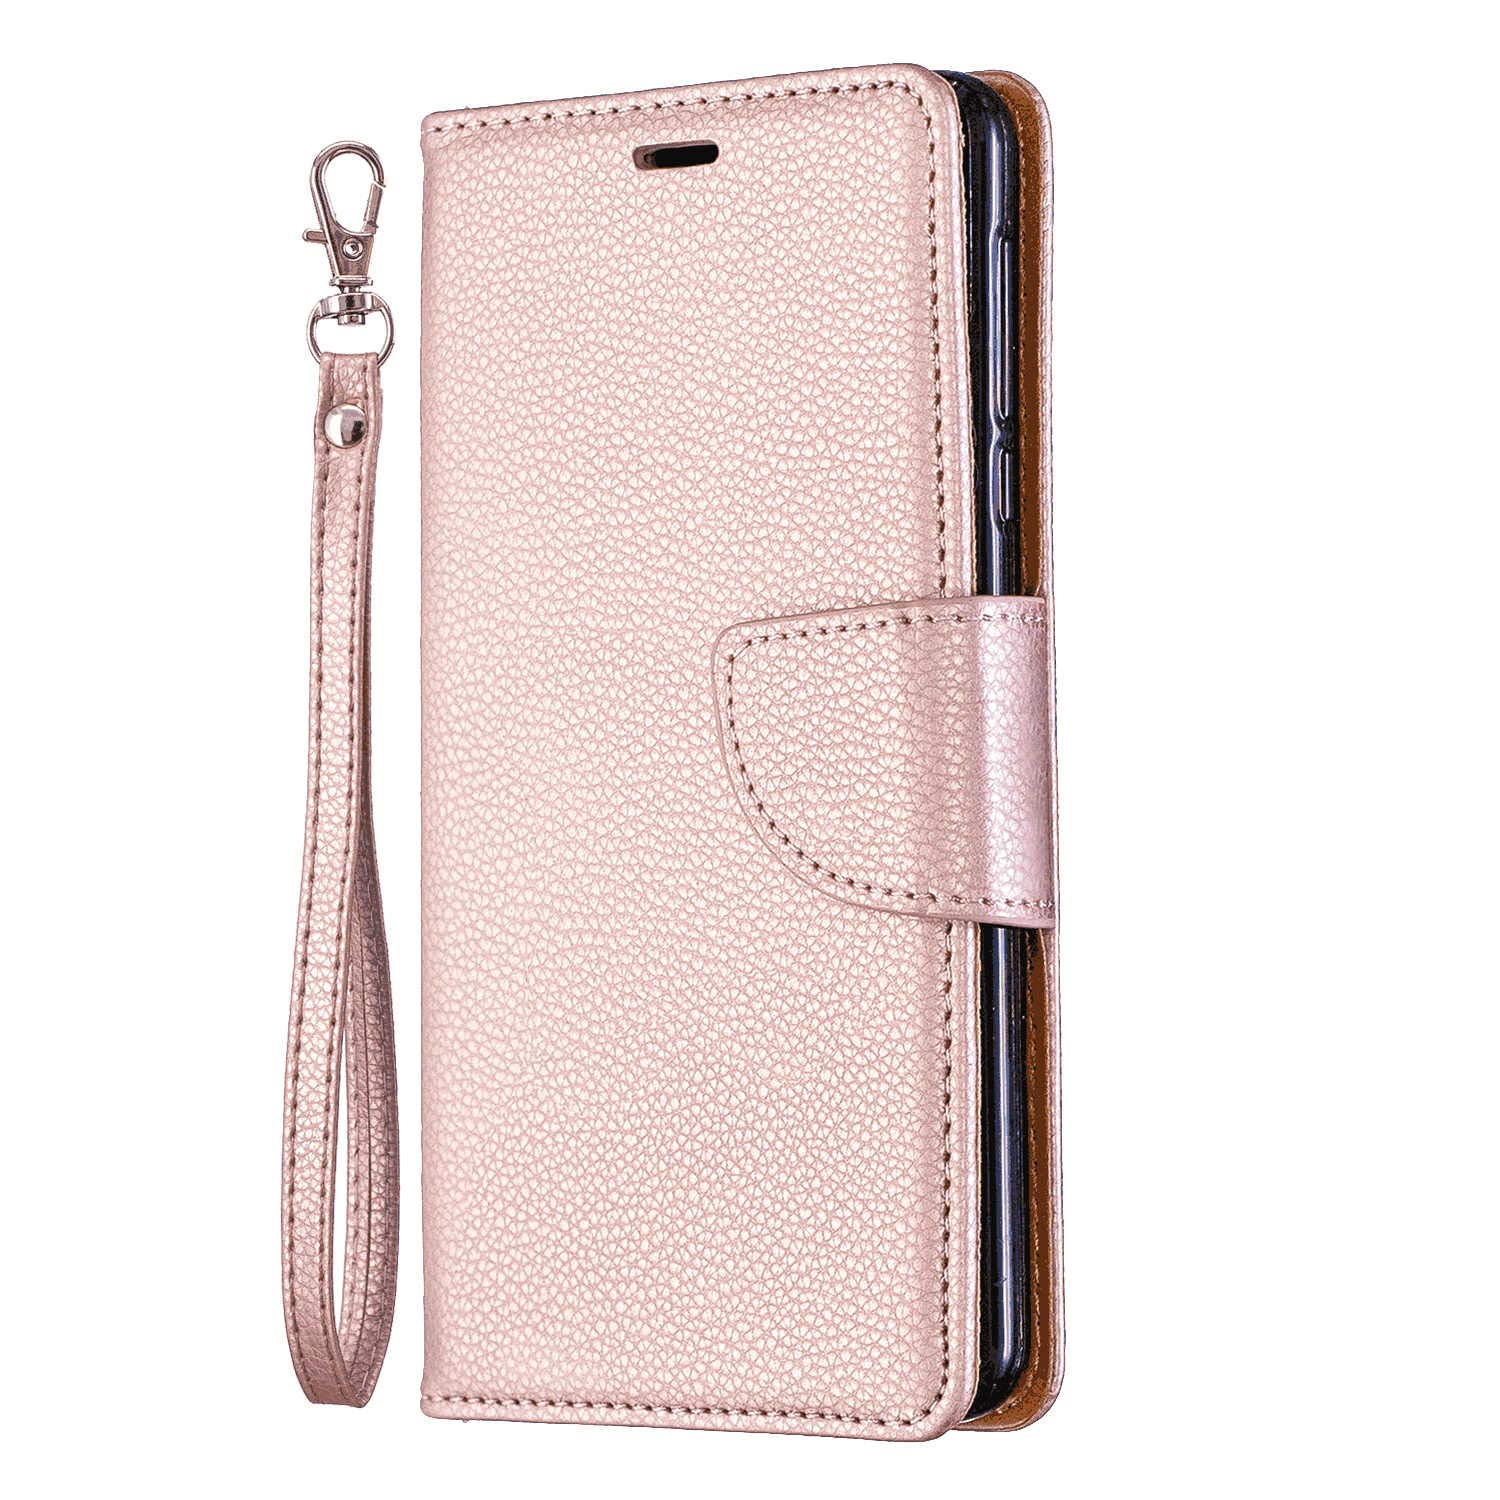 Cover for Samsung Galaxy S9 Leather Card Holders Kickstand Premium Business Mobile Phone casewith Free Waterproof-Bag Samsung Galaxy S9 Flip Case